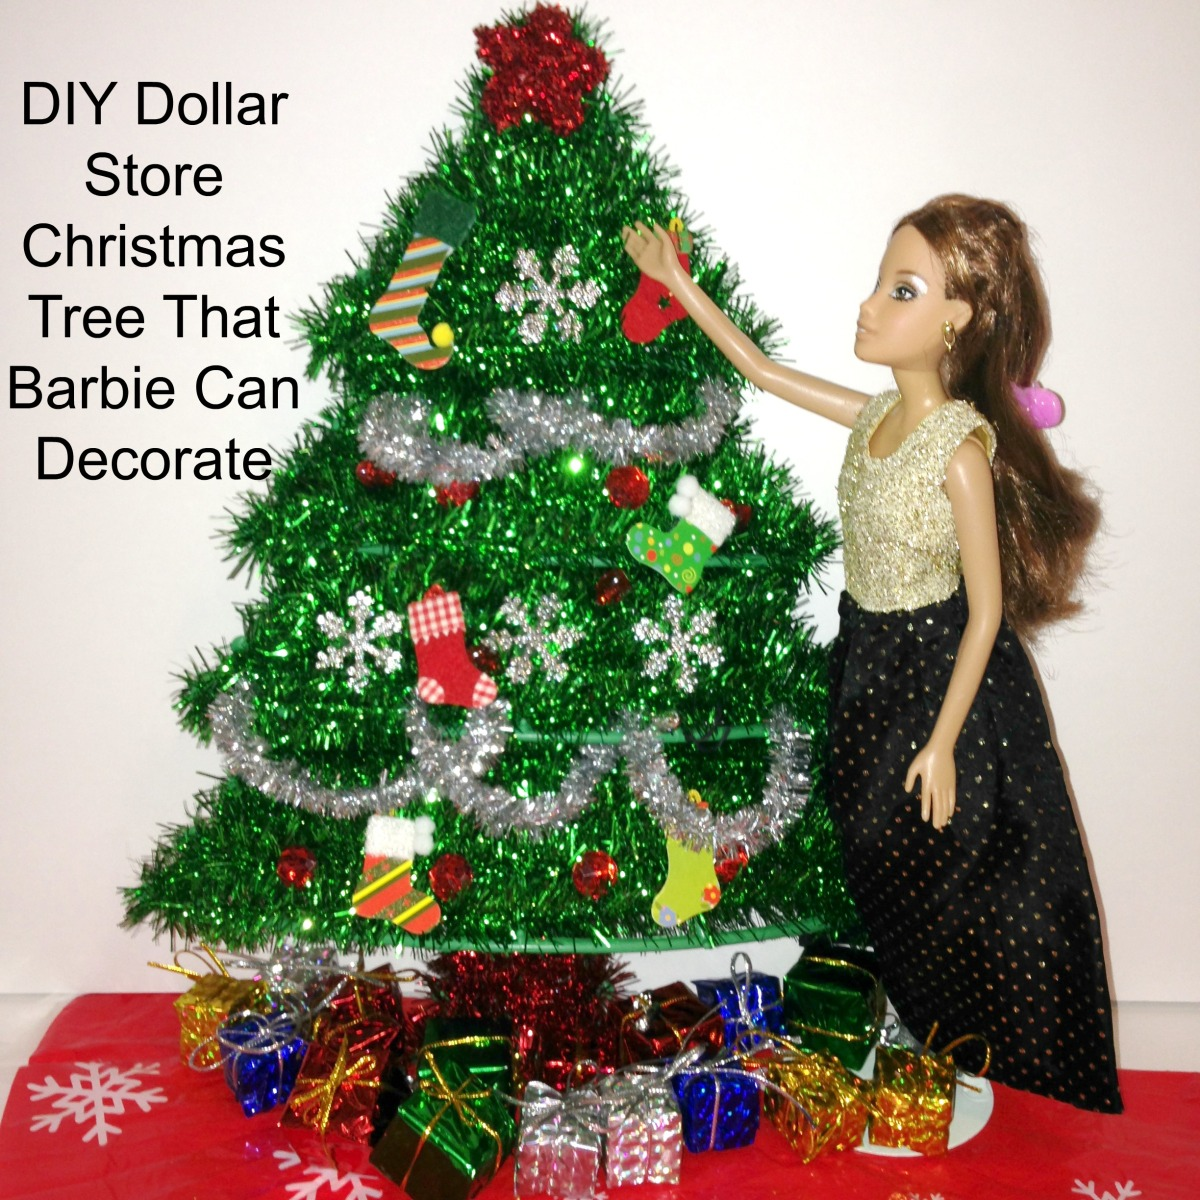 DIY Dollar Store Barbie-Doll Christmas Tree That Barbie Can Decorate!